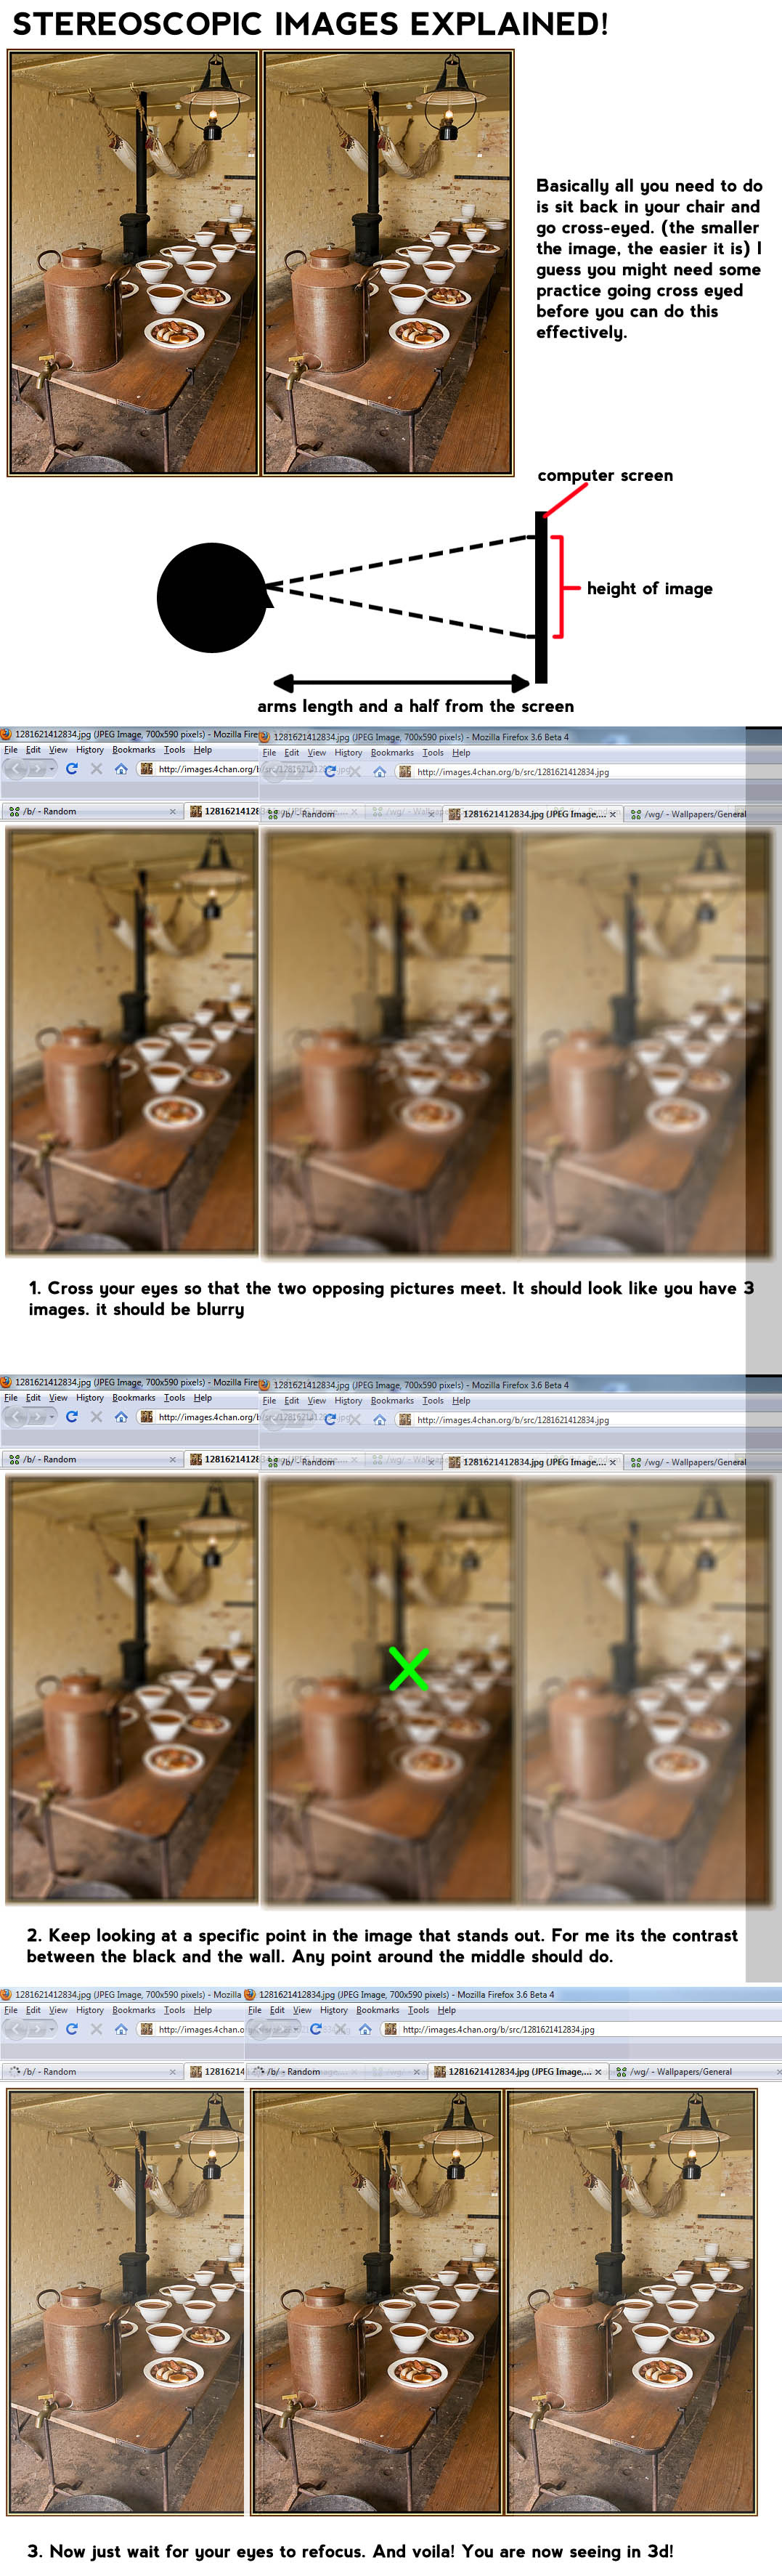 Cross your eyes until two opposing pictures meet.it should look like 3 blurry images, keep looking at specific point until an image stands out. Now just wait for your eyes […]